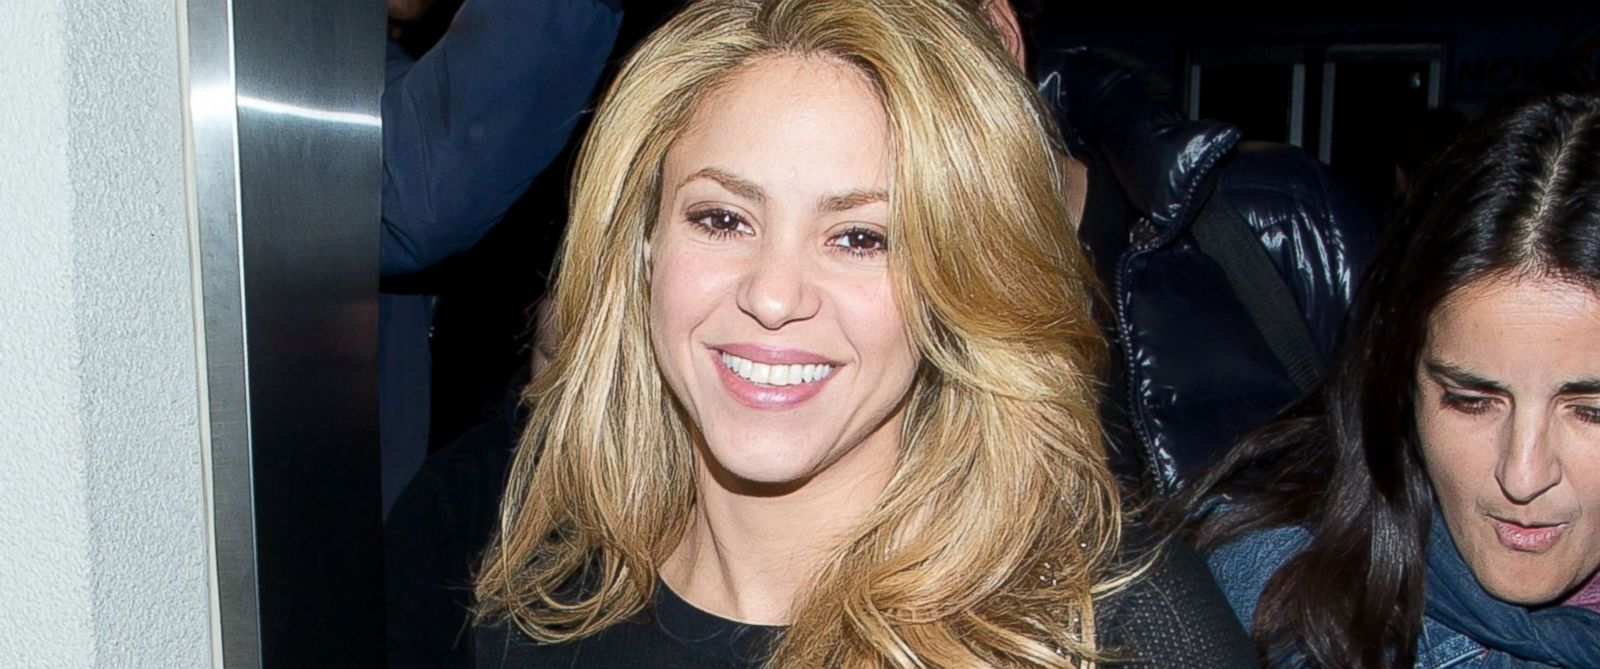 PHOTO: Shakira is seen arriving at LAX airport on Dec. 8, 2013 in Los Angeles, Calif.